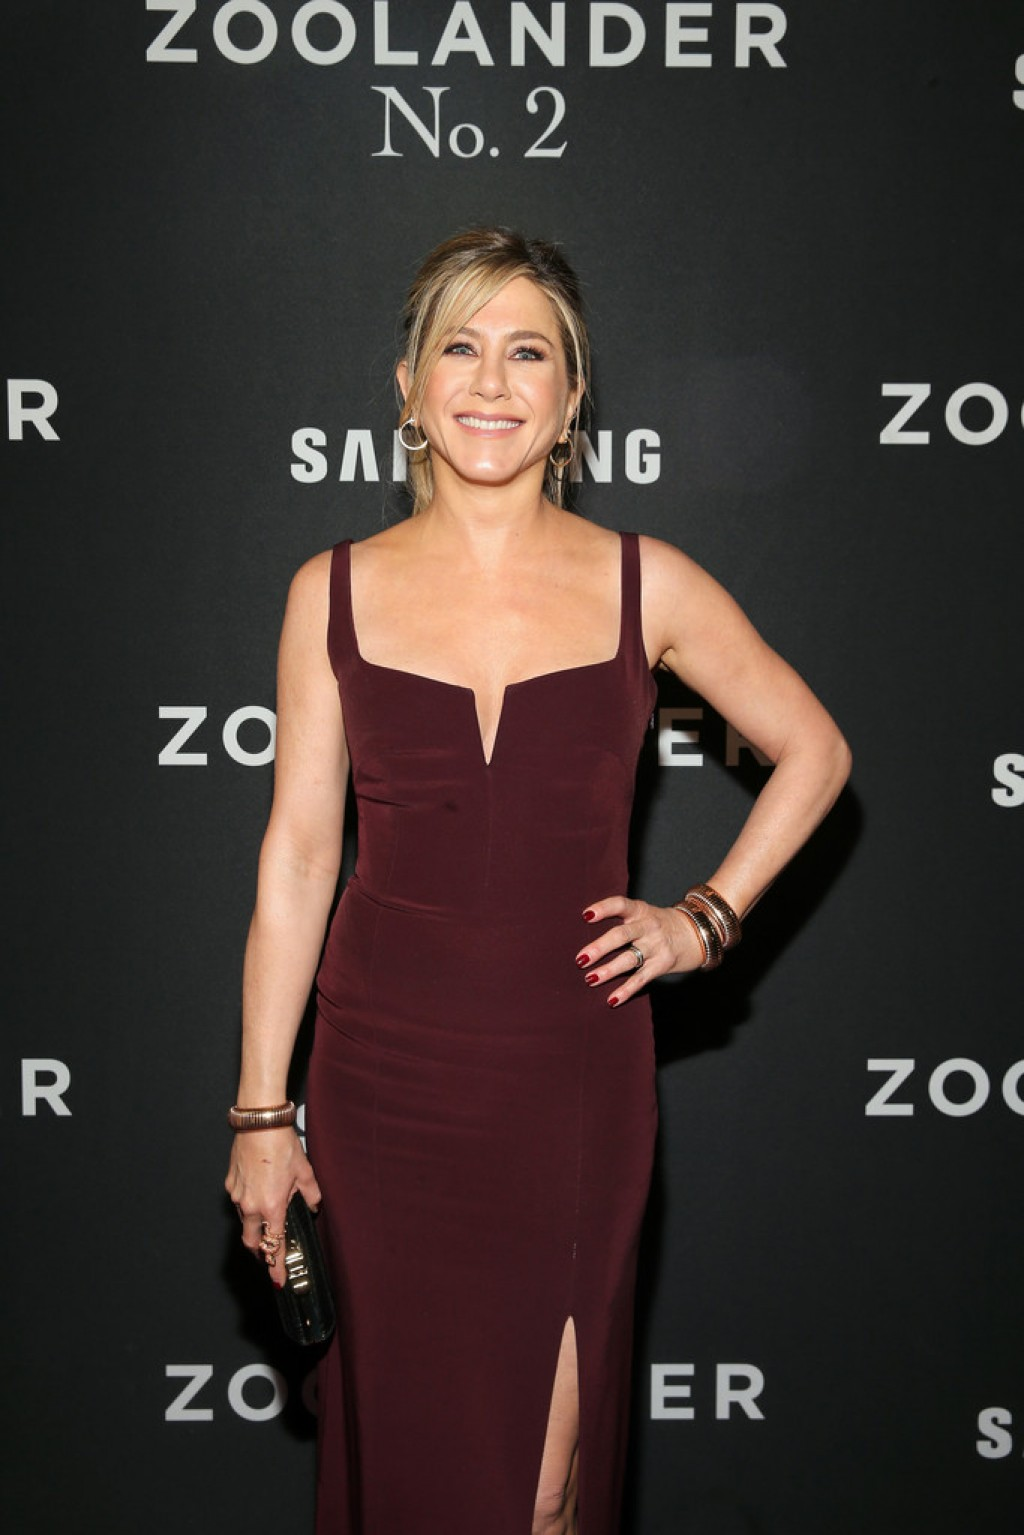 Jennifer Aniston In Galvan Zoolander 2 World Premiere Fashionsizzle